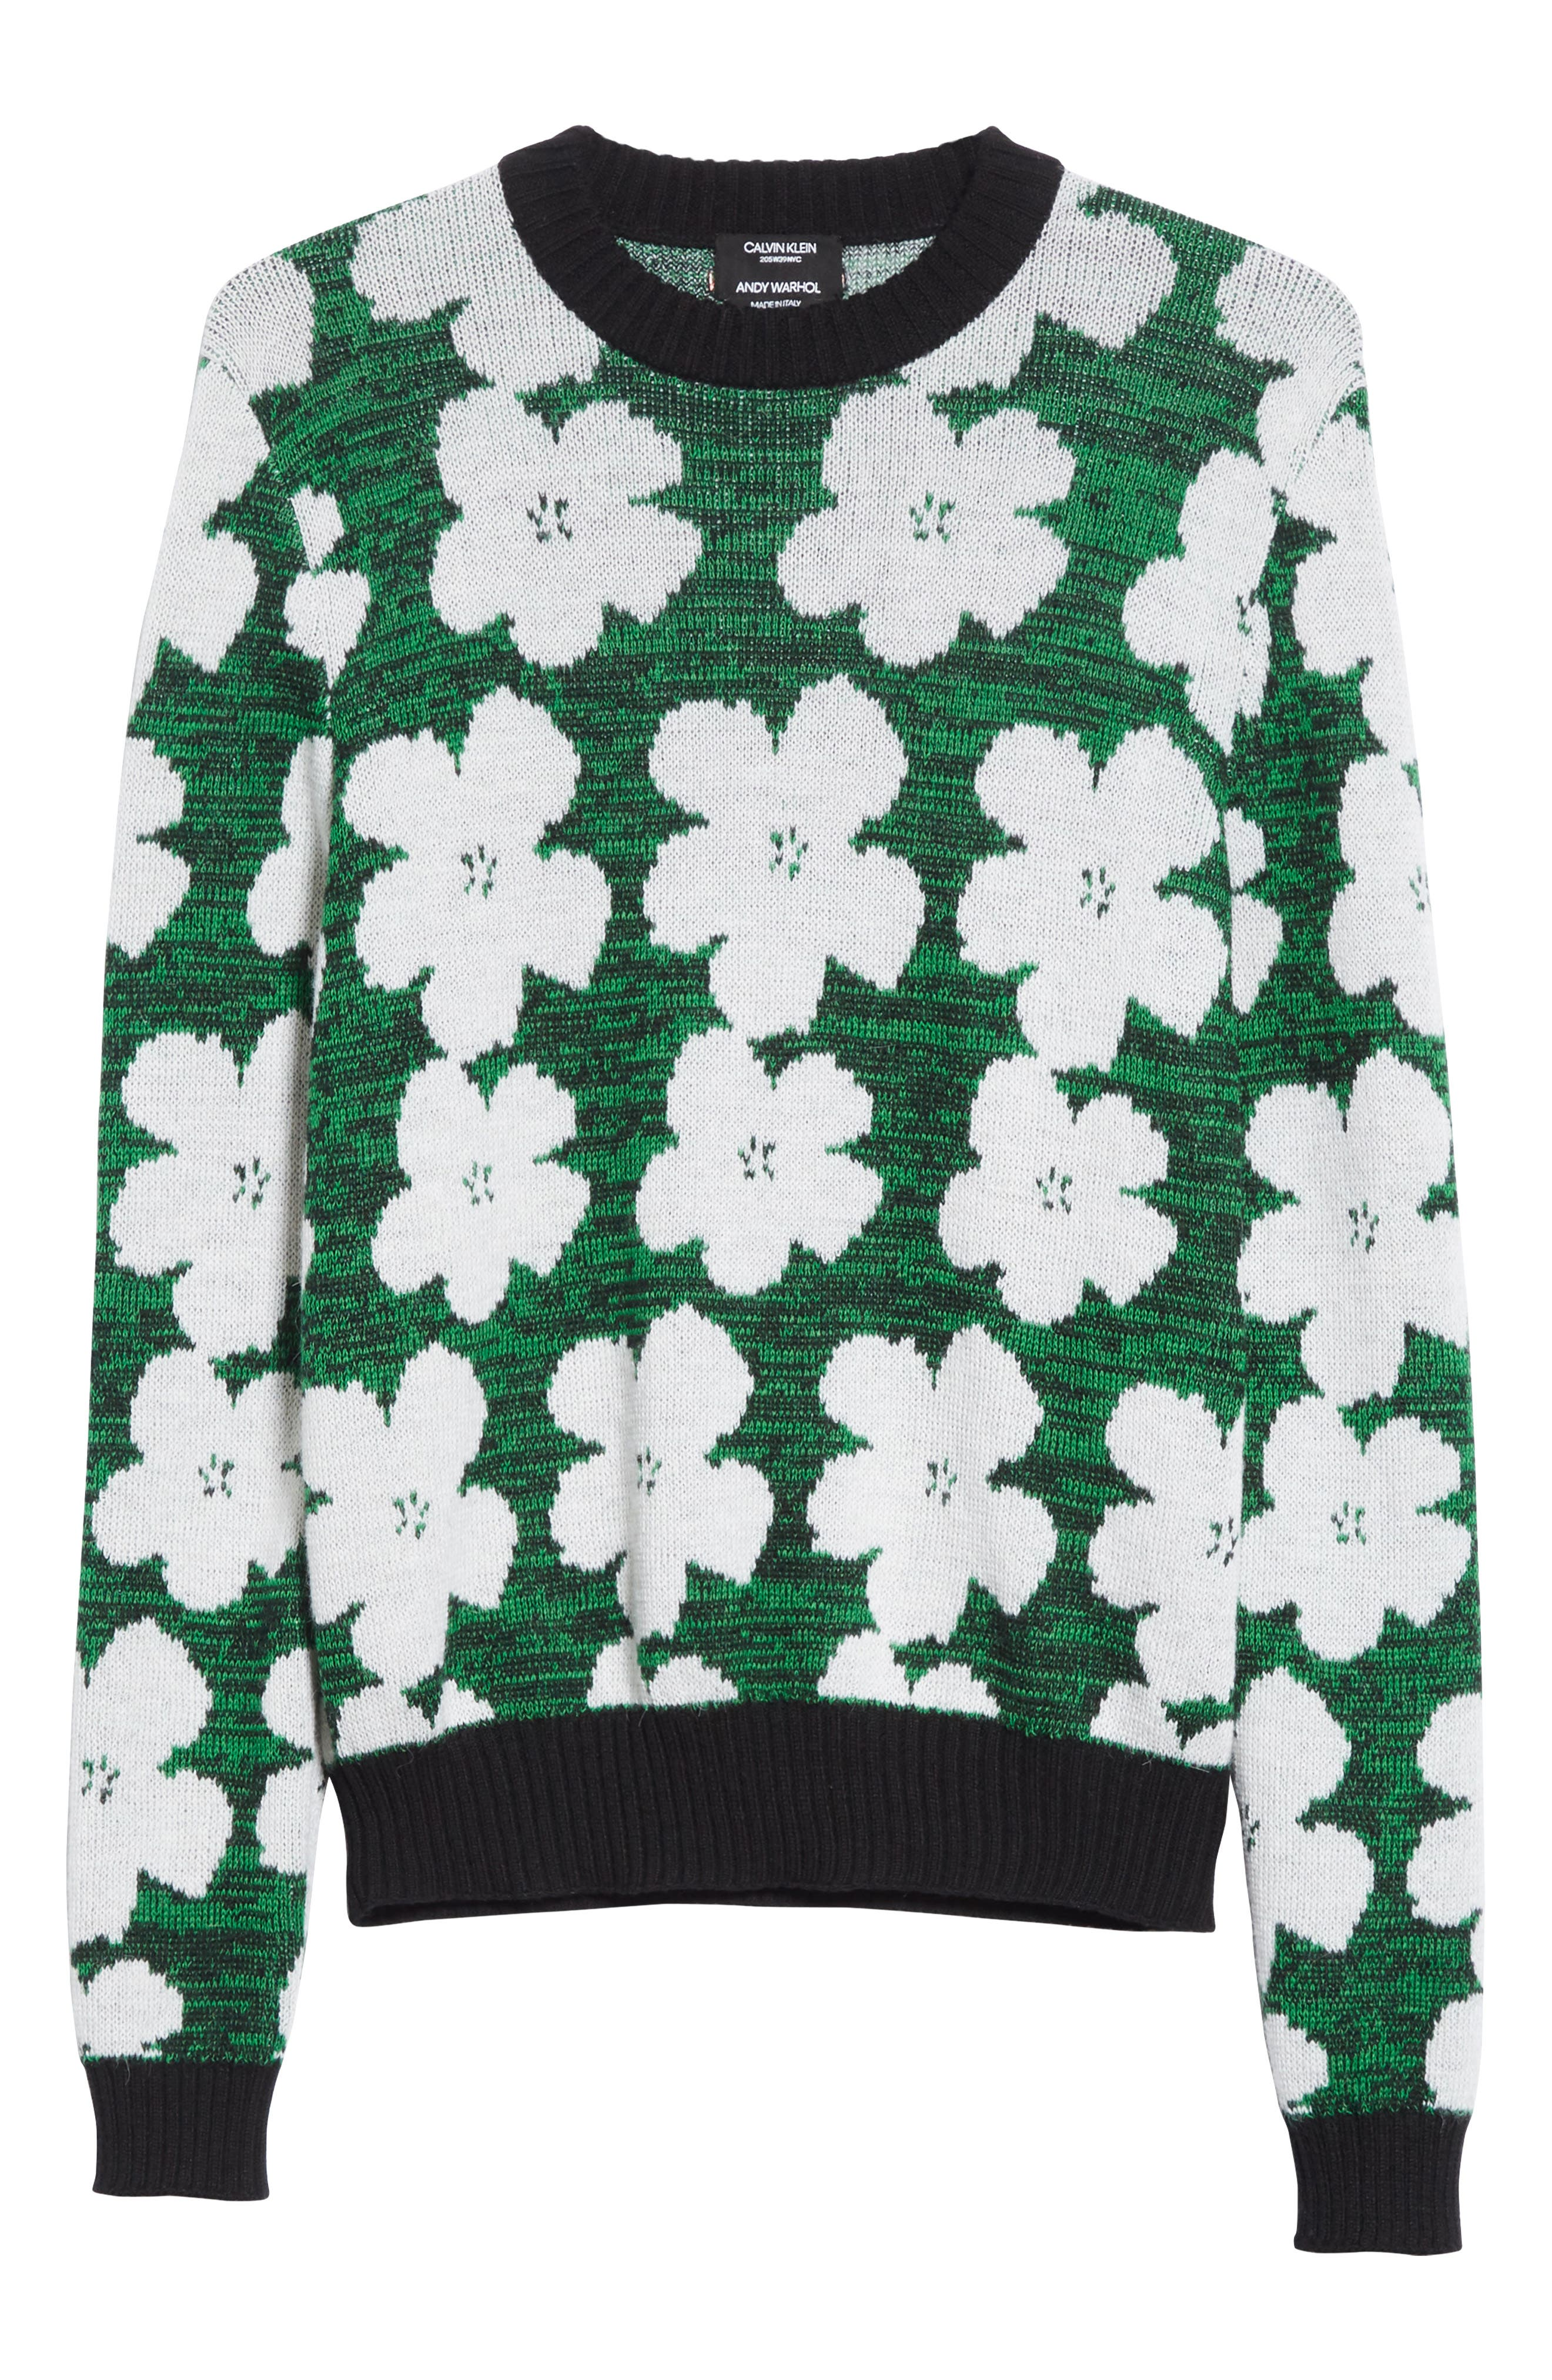 Andy Warhol Flower Sweater,                             Alternate thumbnail 6, color,                             320